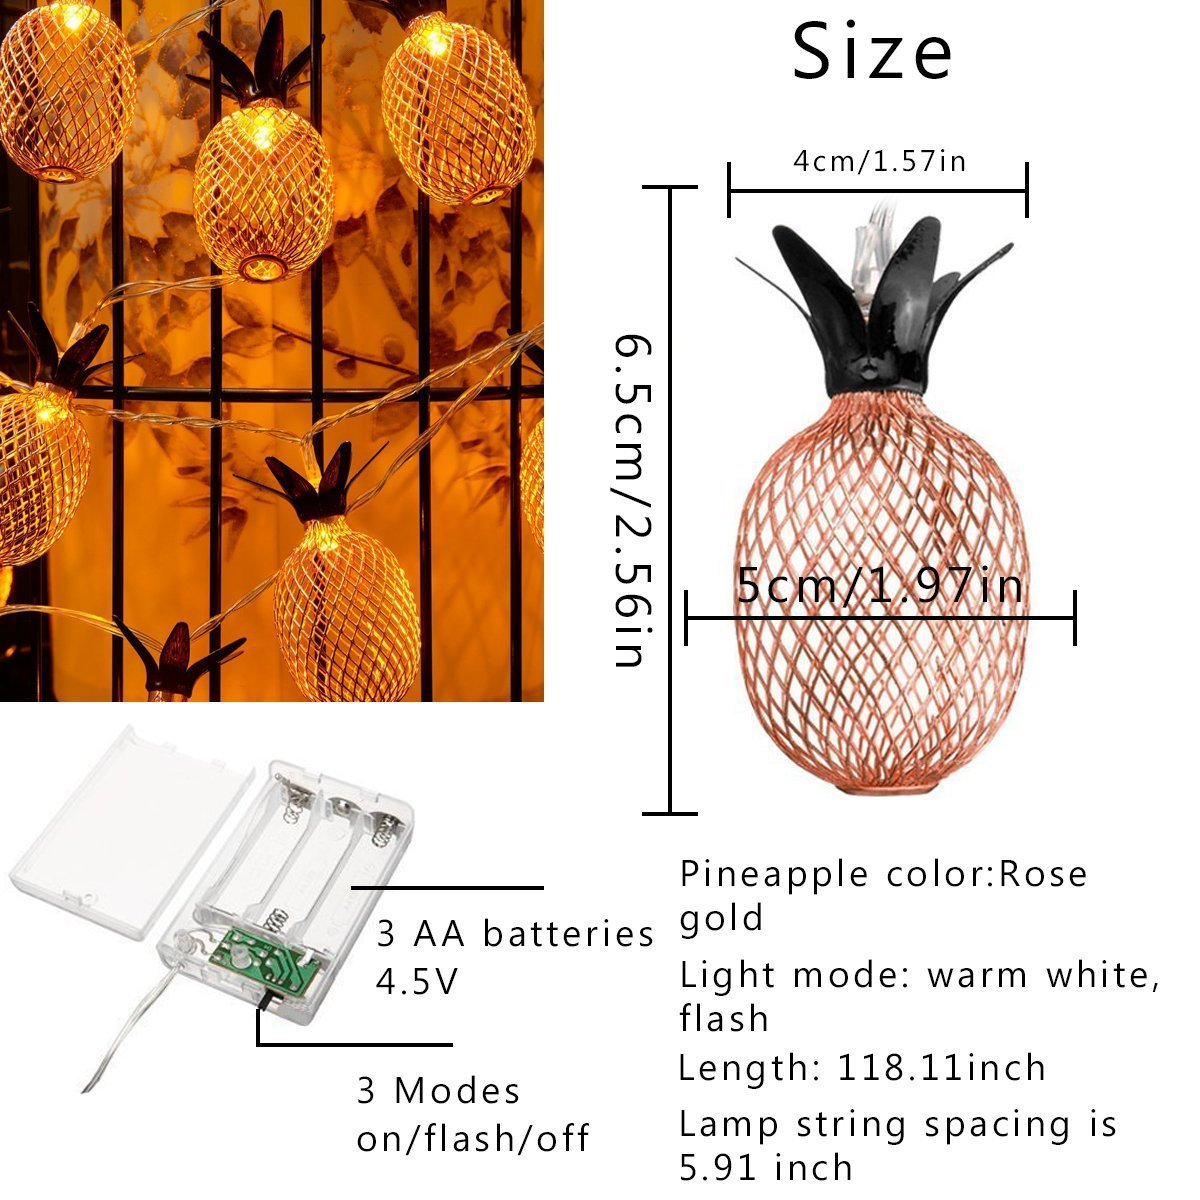 9.8FT//3M 20 LED Bulbs Battery Operated Romantic Fairy Lights for Wedding Garden Festival Party Halloween Christmas Indoor /& Outdoor Decoration-Warm White Pineapple String Lights